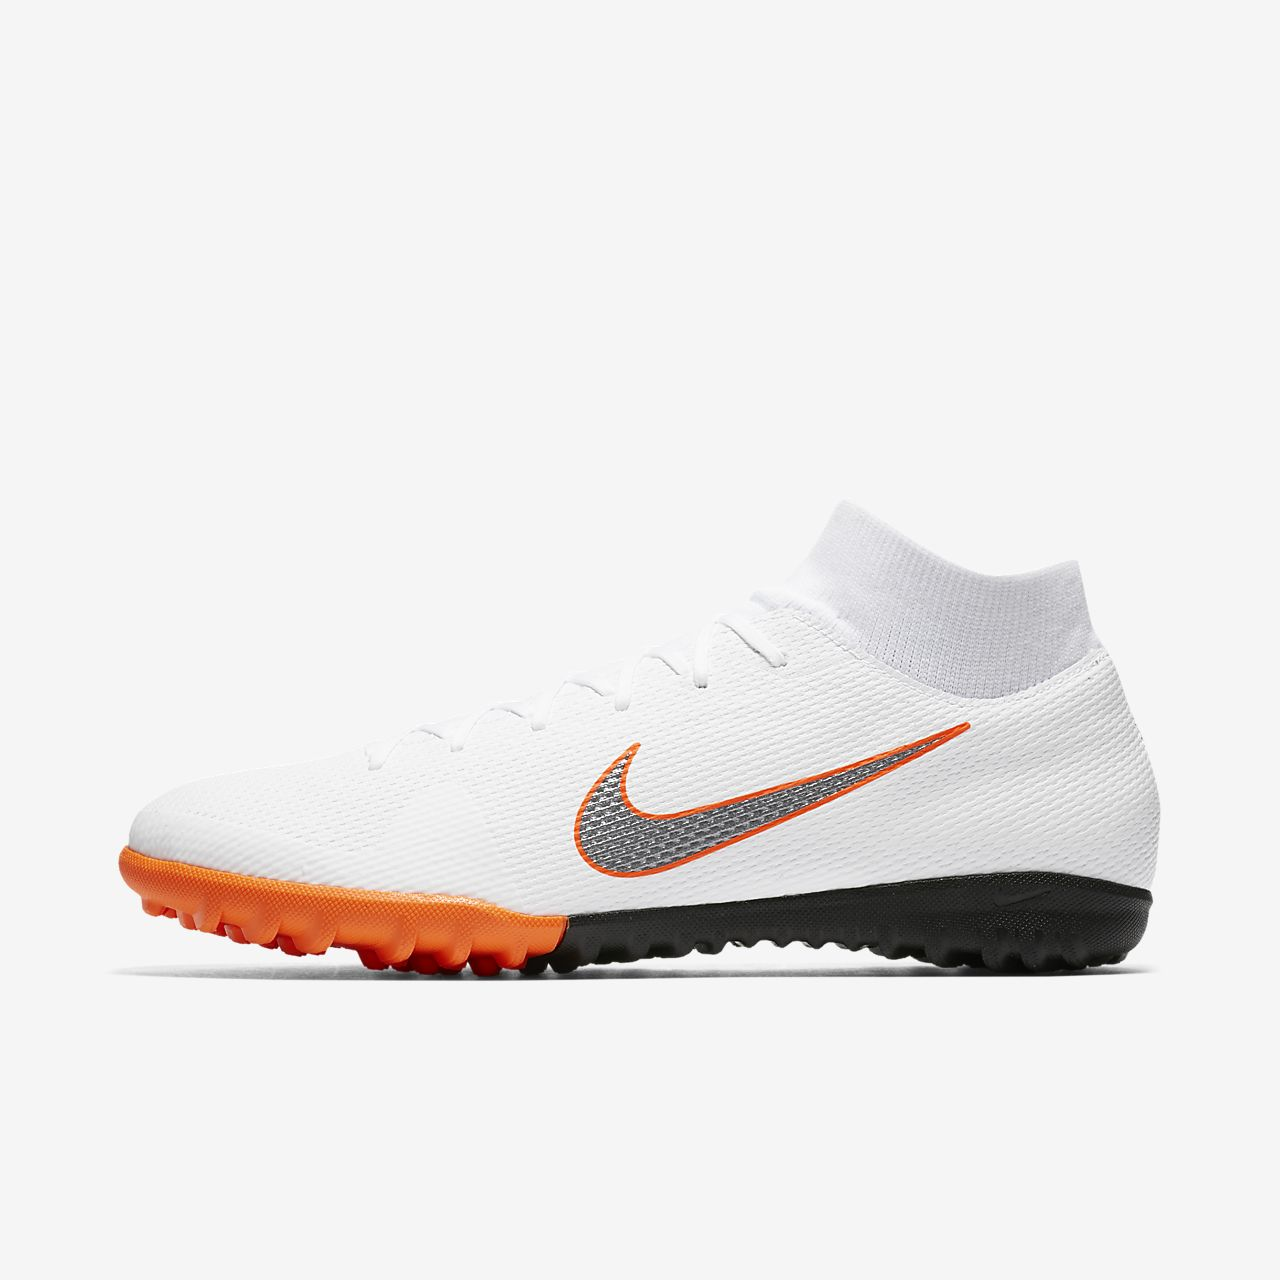 Mercurialx Nike Pour Chaussure Synthétique De Football Surface FWzqYf